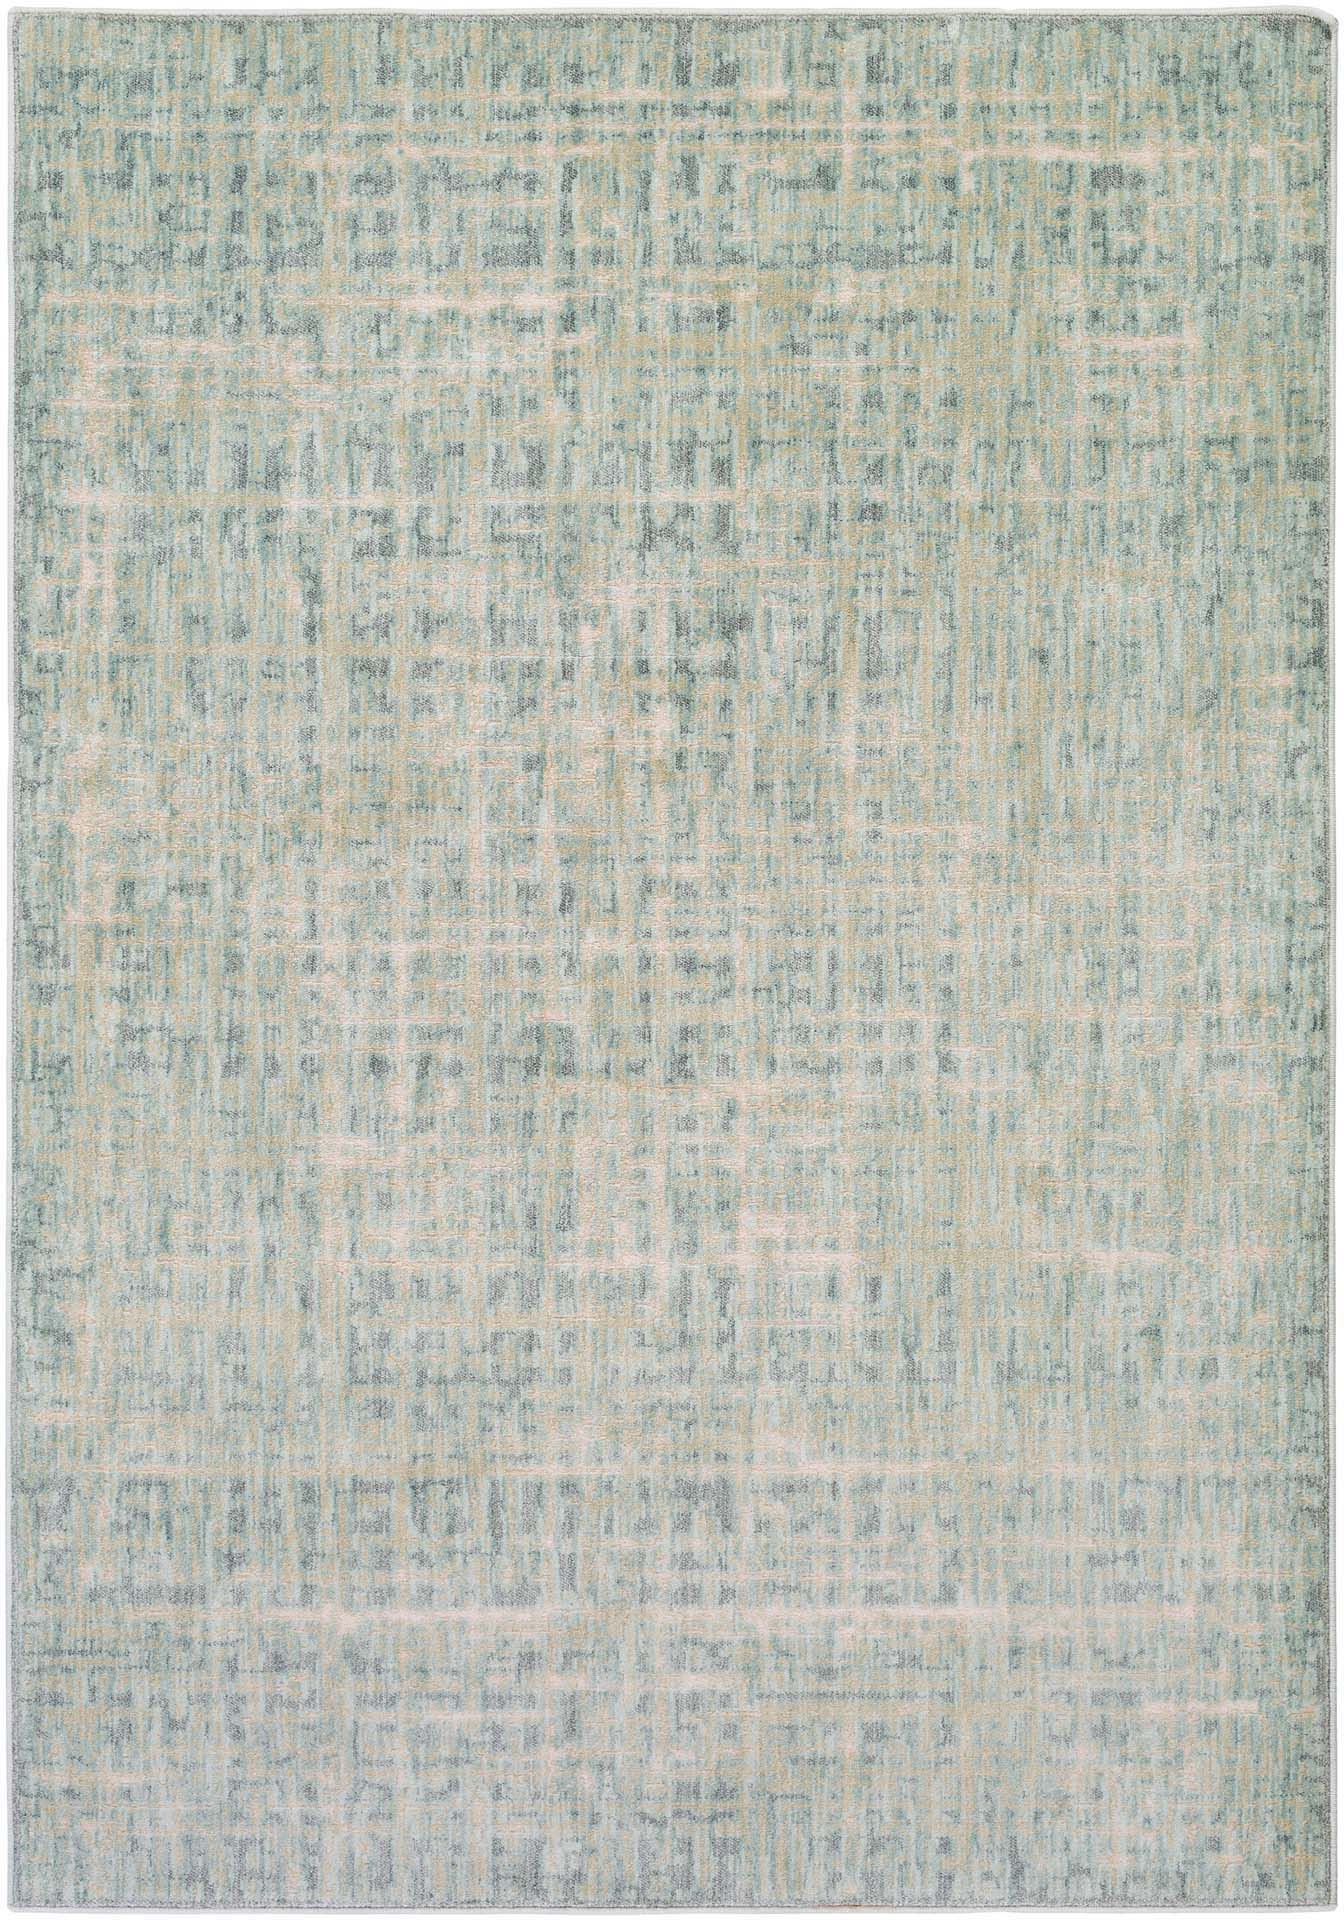 Modern neutral tone machine made Egyptian area rug in green with hints of cream and beige